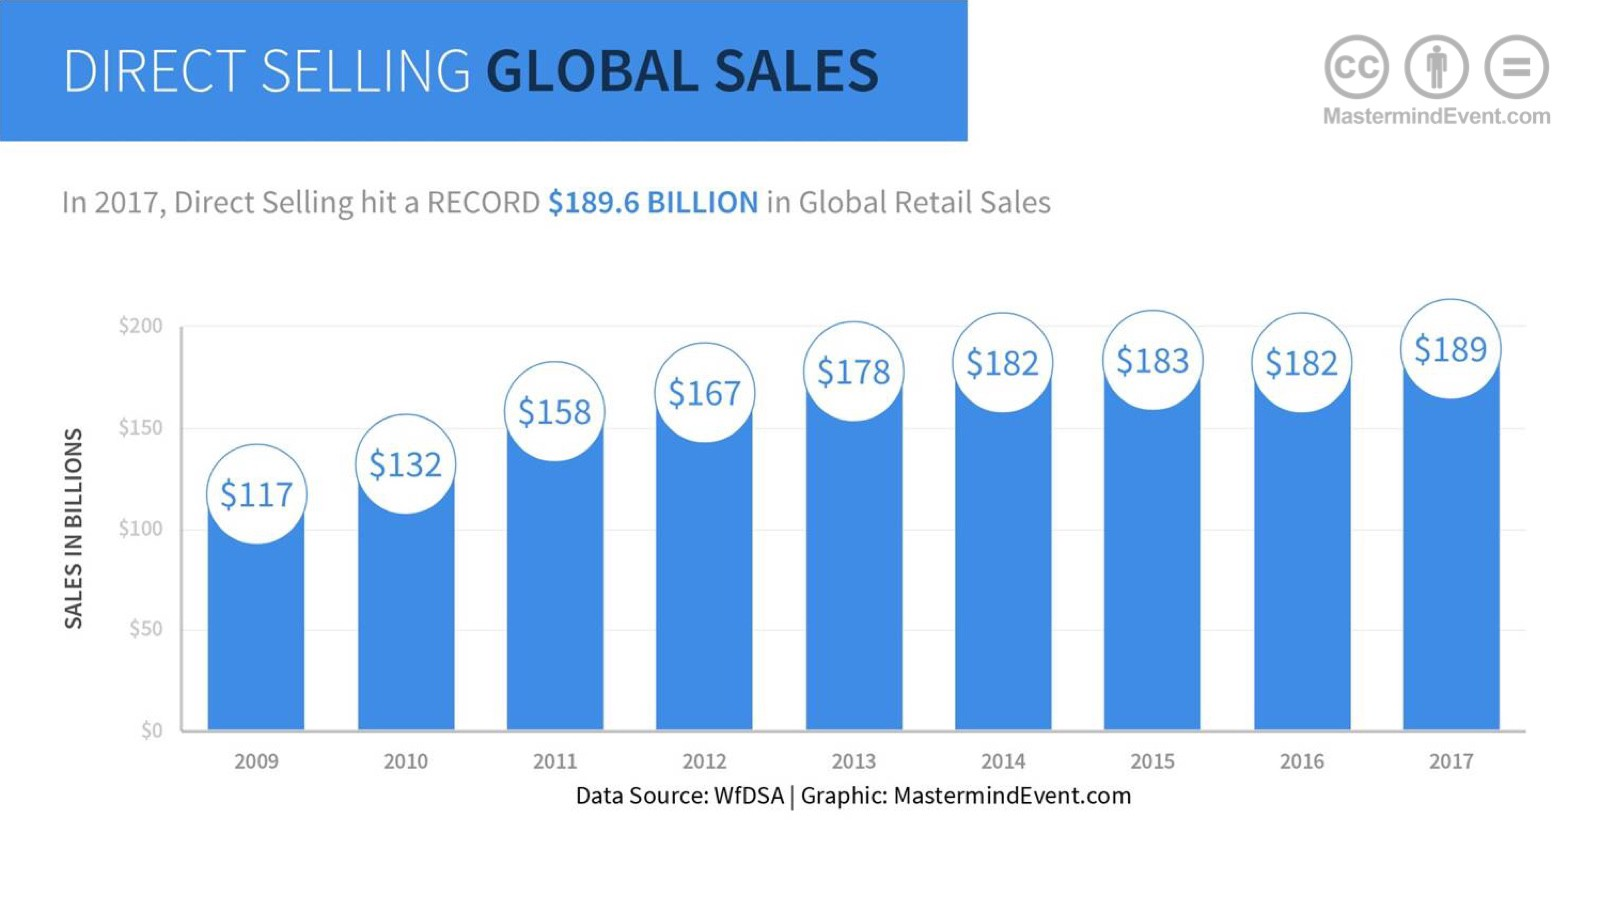 Direct Selling Global Sales 2017